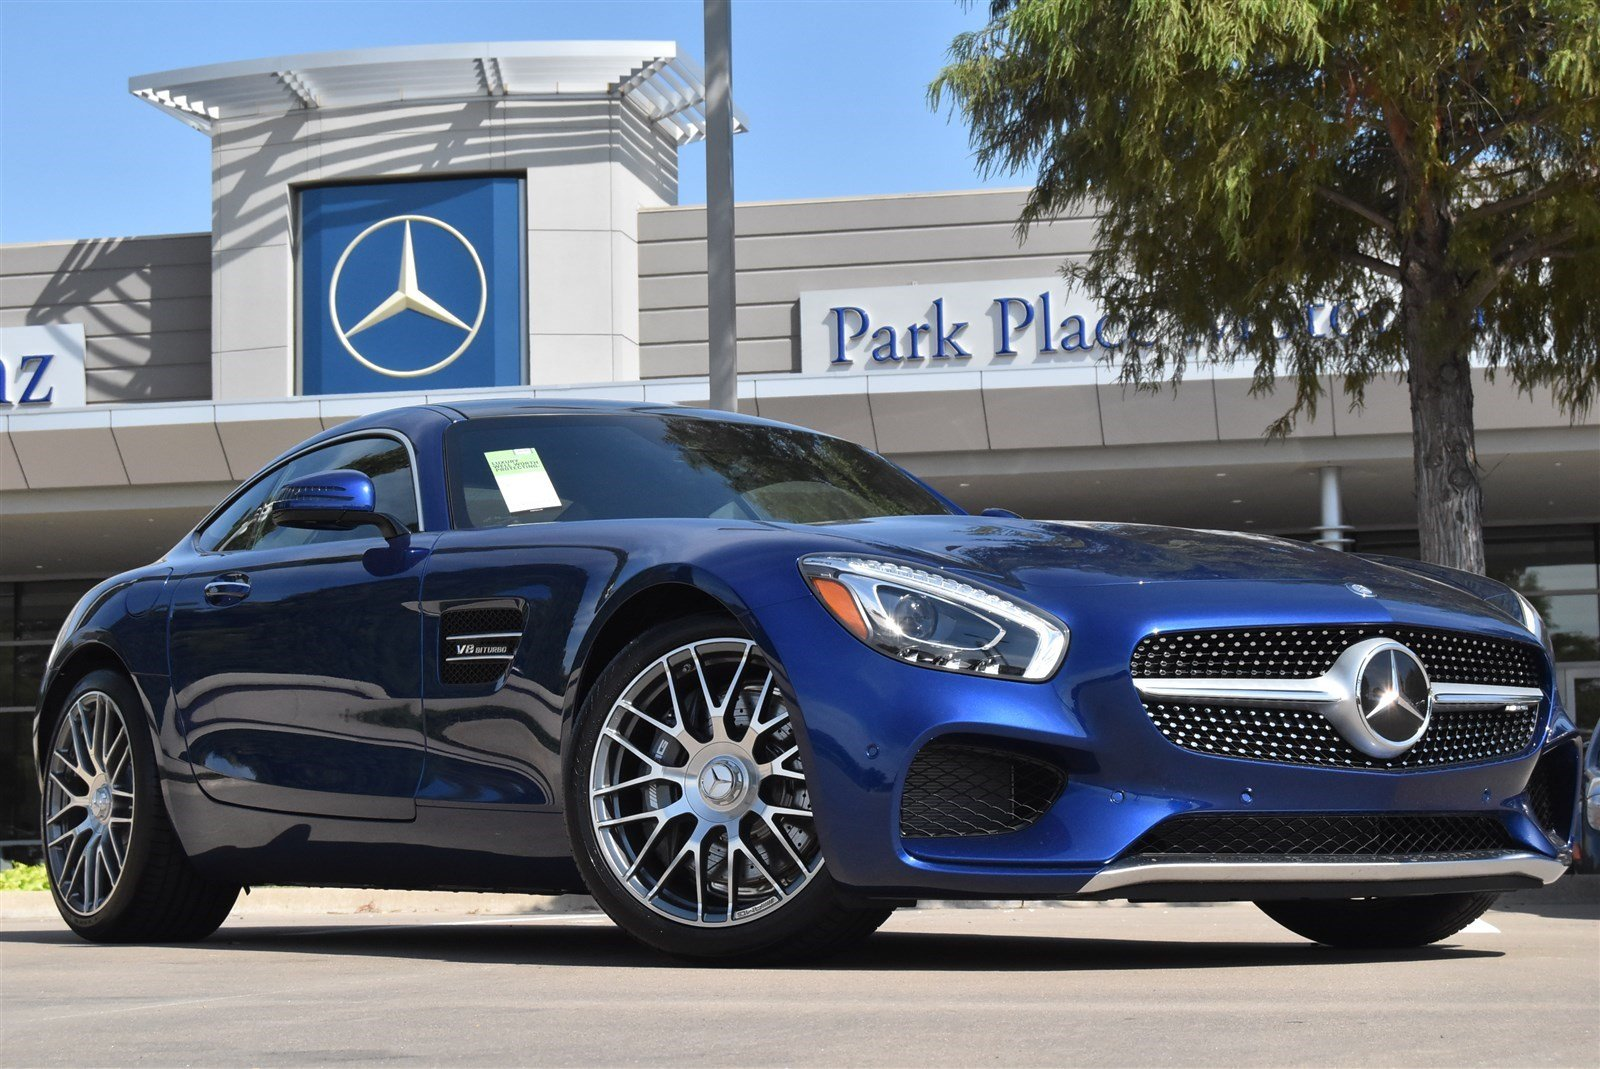 Park place motorcars a dallas mercedes benz dealership for Mercedes benz park place